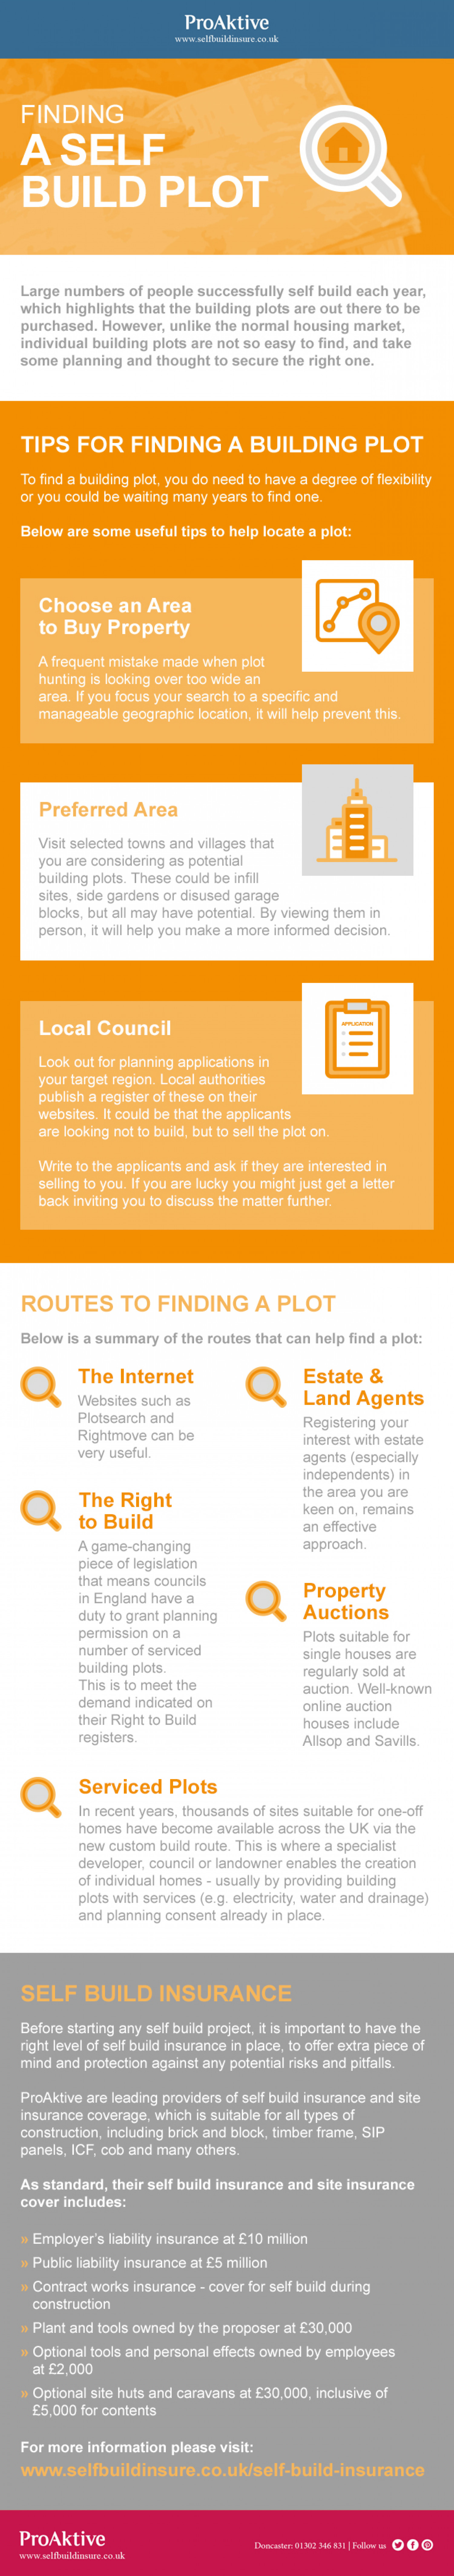 Finding a Self Build Plot Infographic